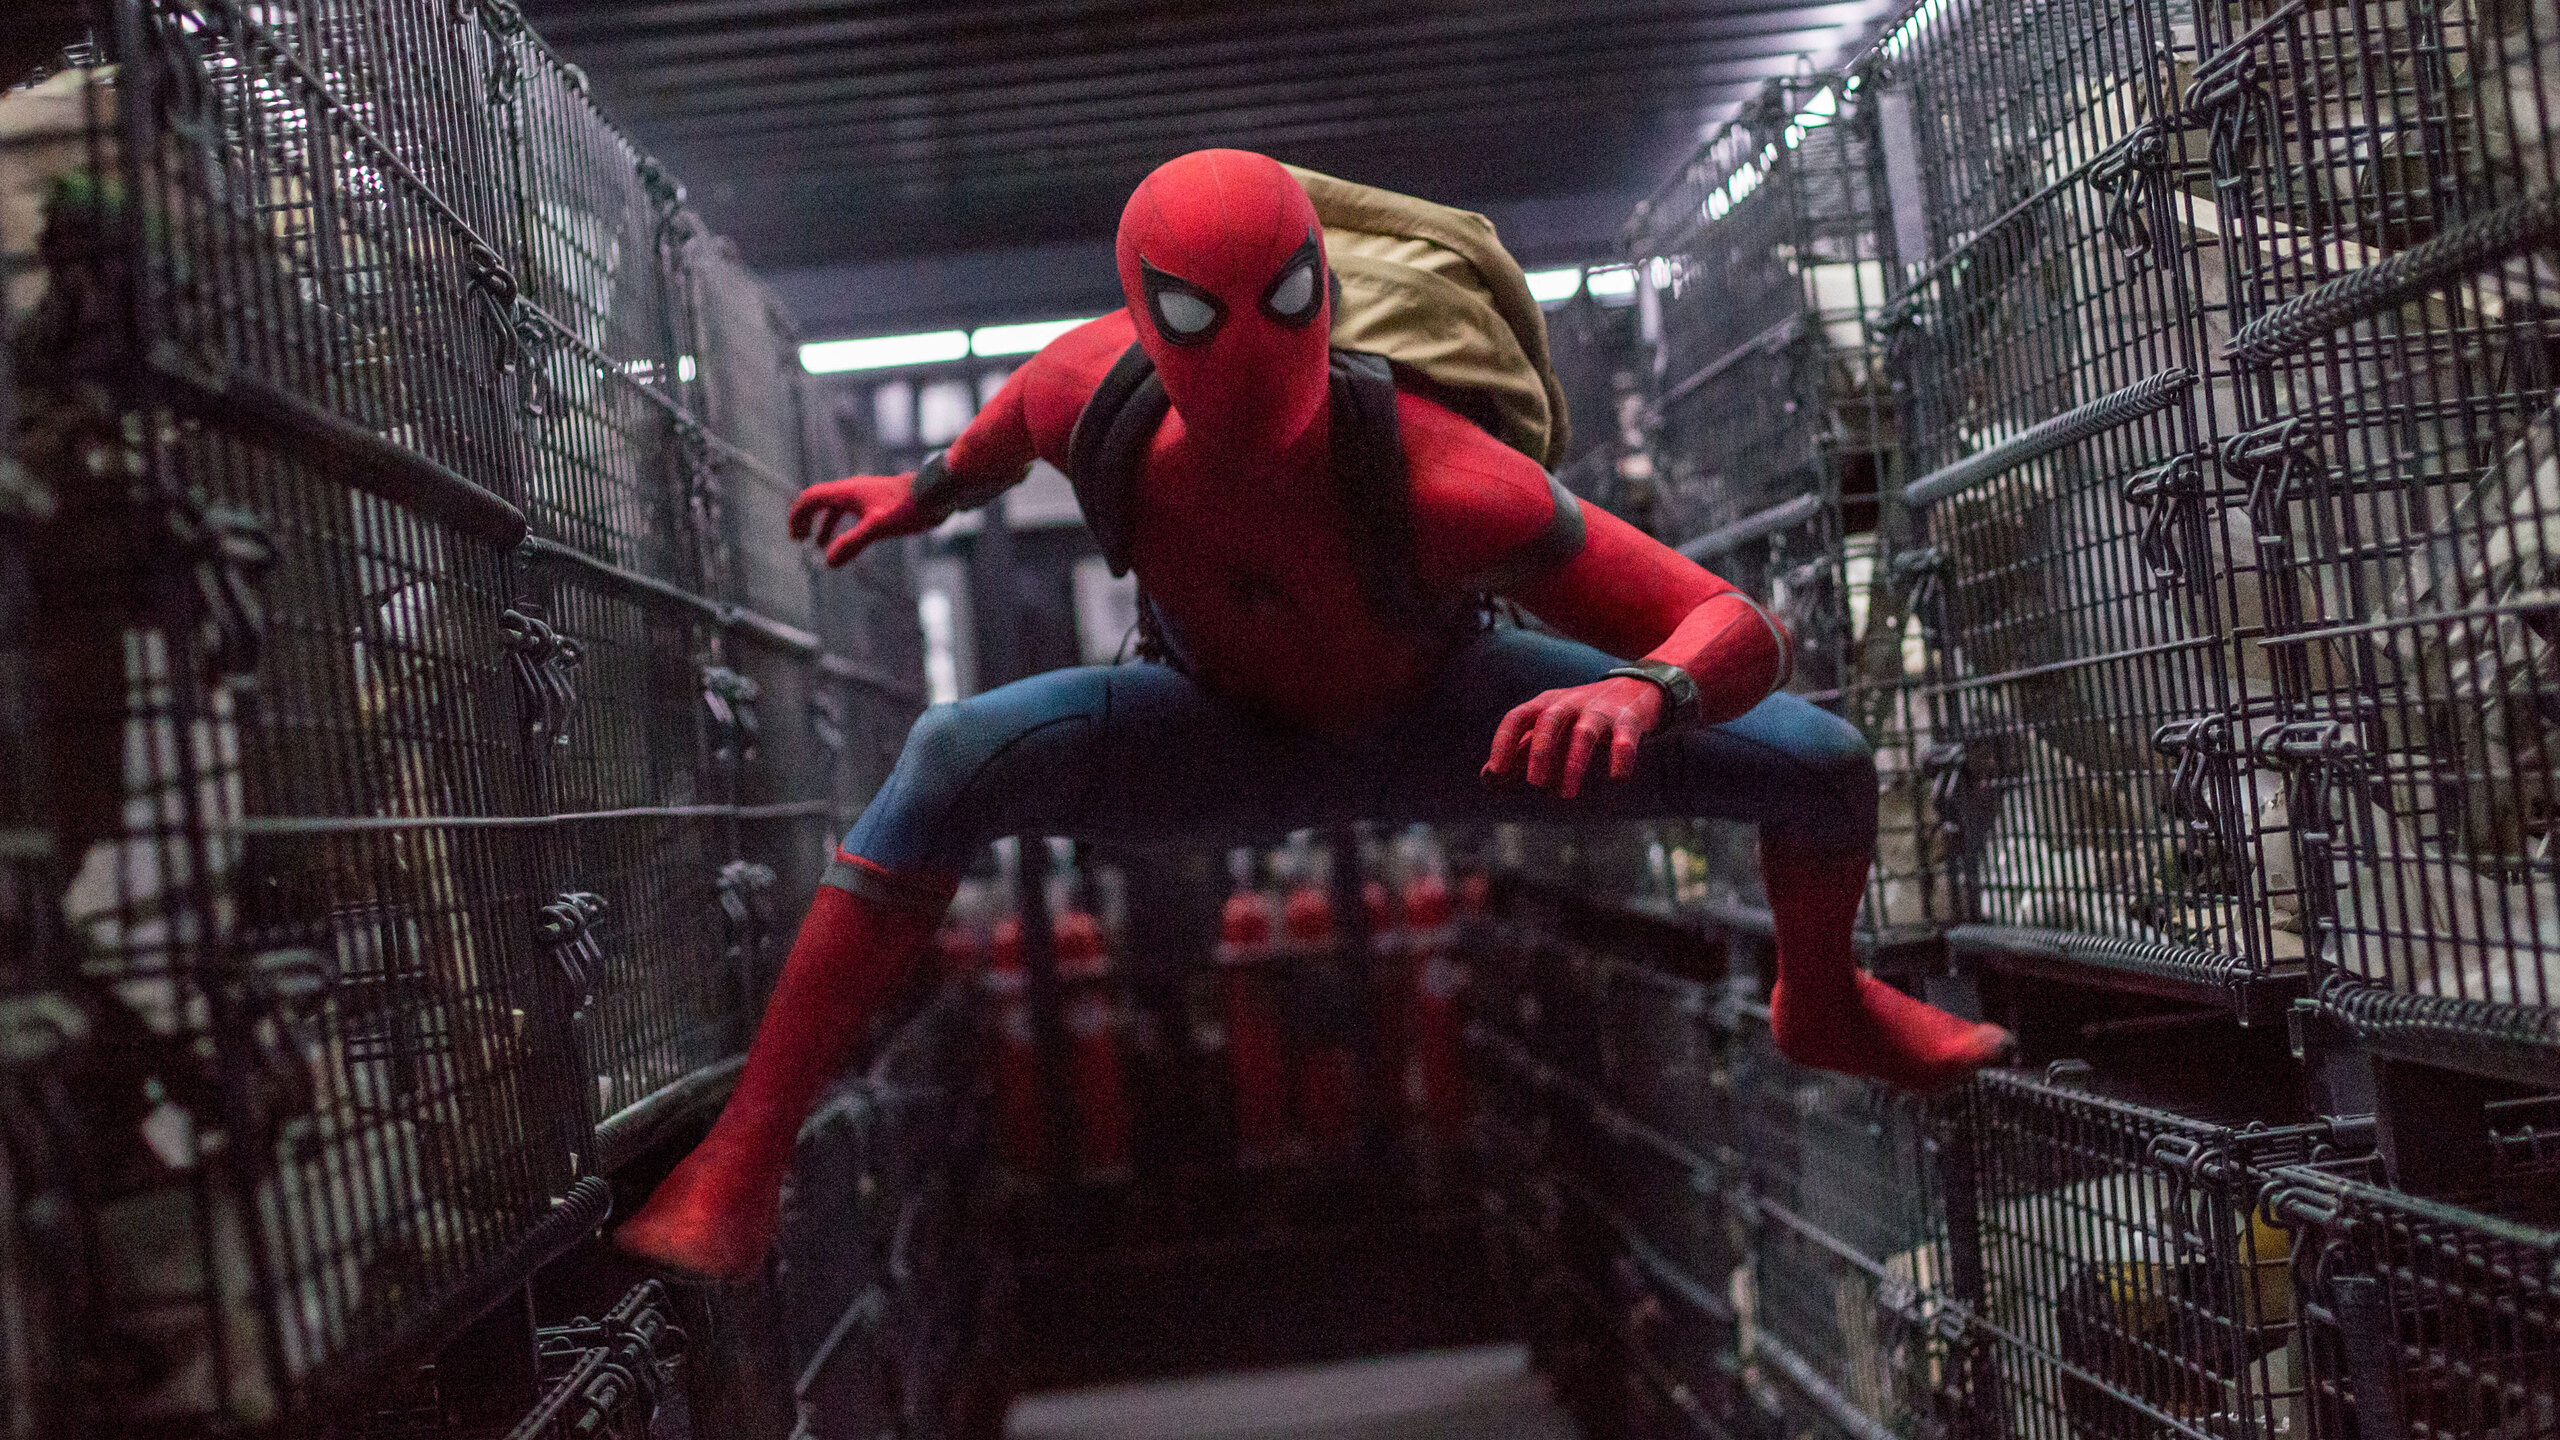 2560x1440 spider man homecoming 1440p resolution hd 4k - Spider hd images download ...